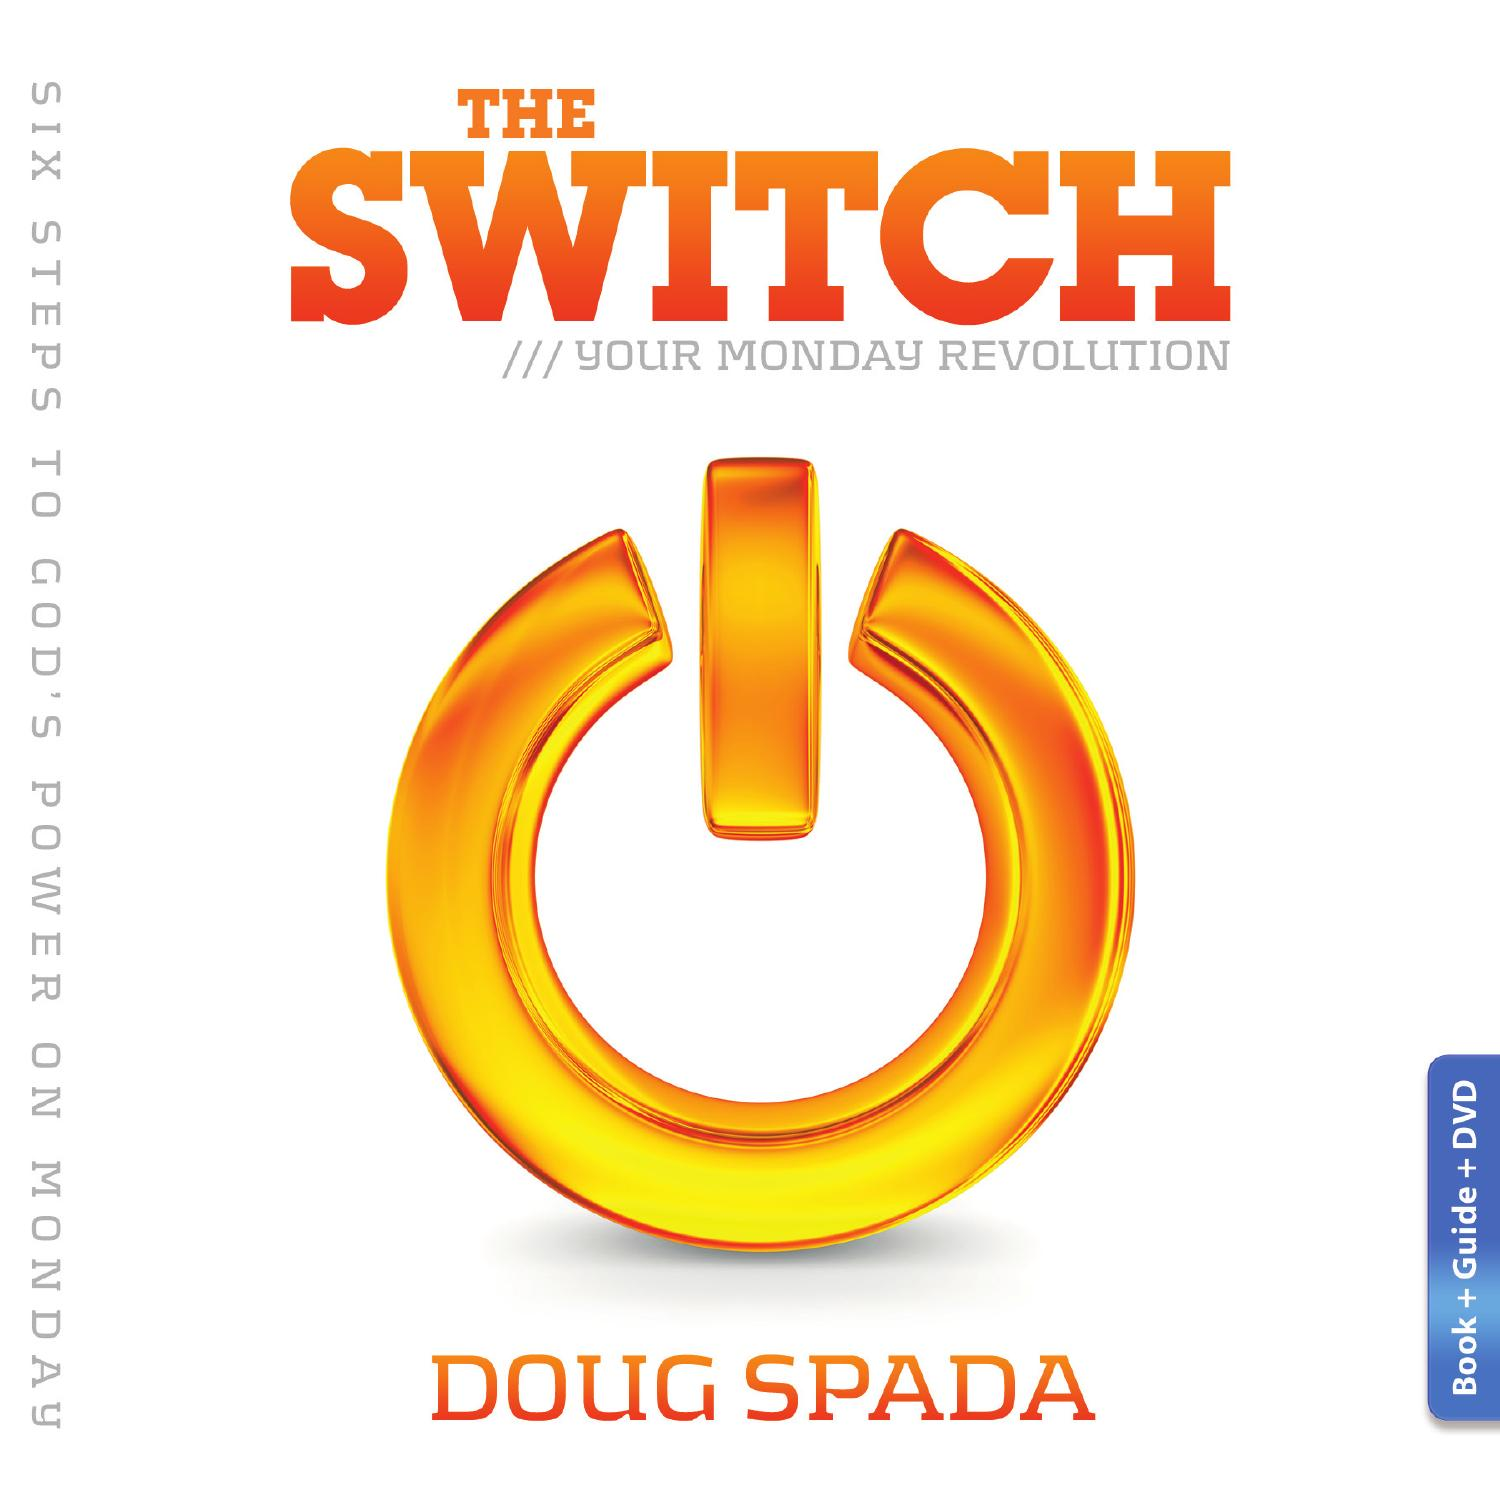 1984 Book 3 Chapter 1 Quotes: Monday Switch Experience Guide Book By